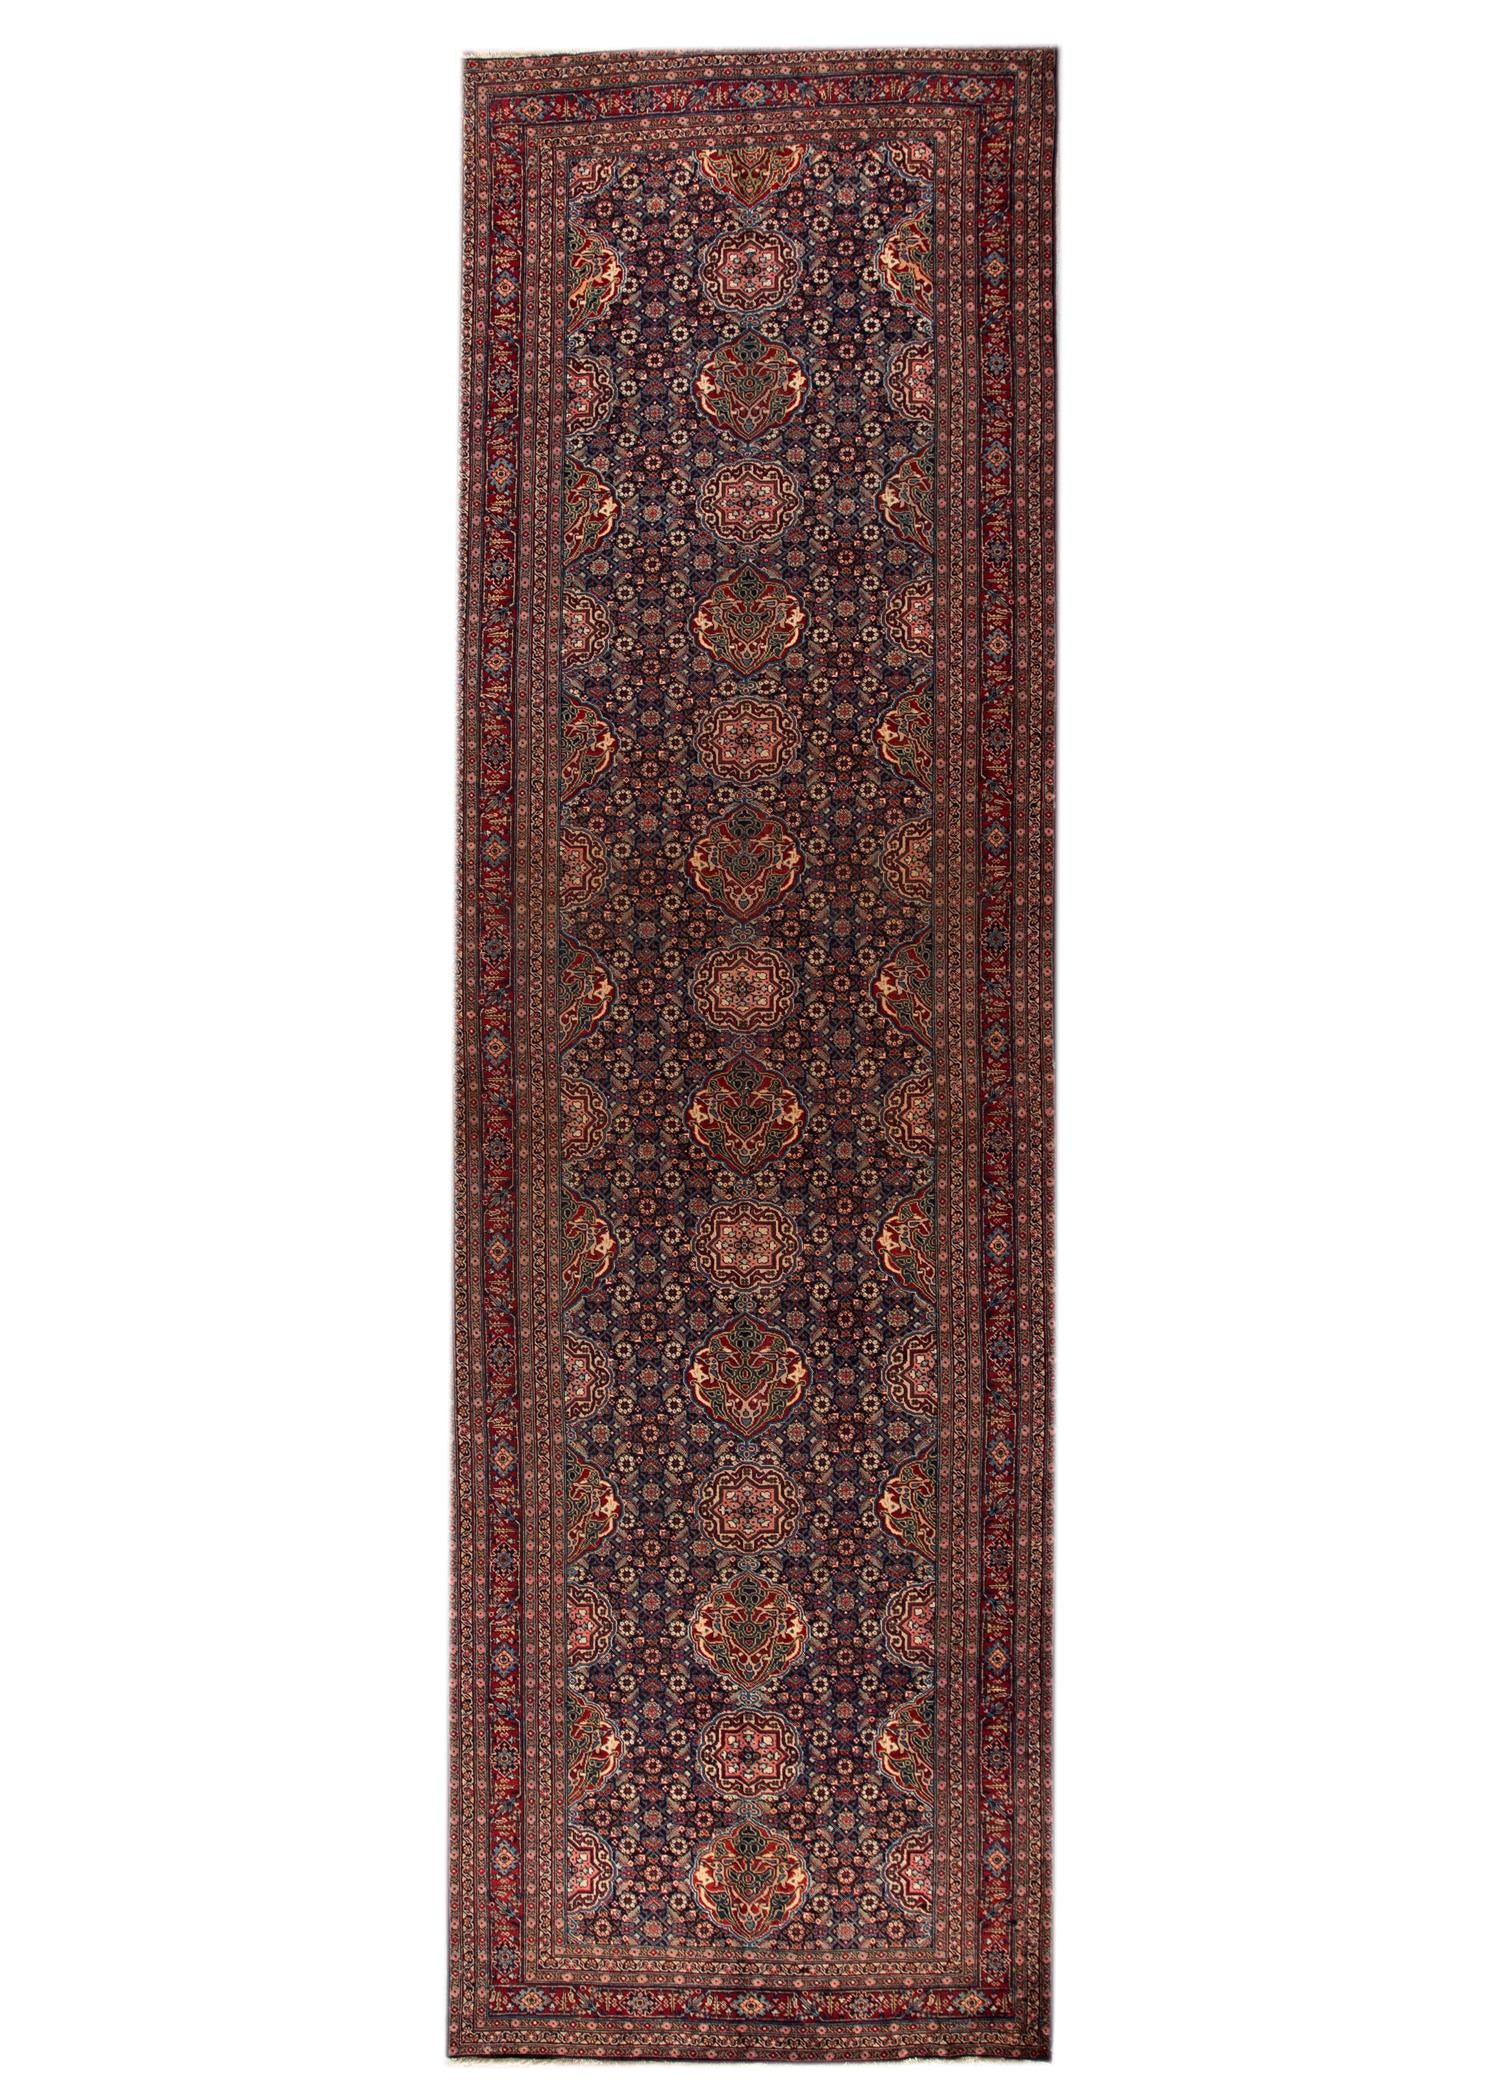 Antique Persian Tabriz Rug, 6 X 19